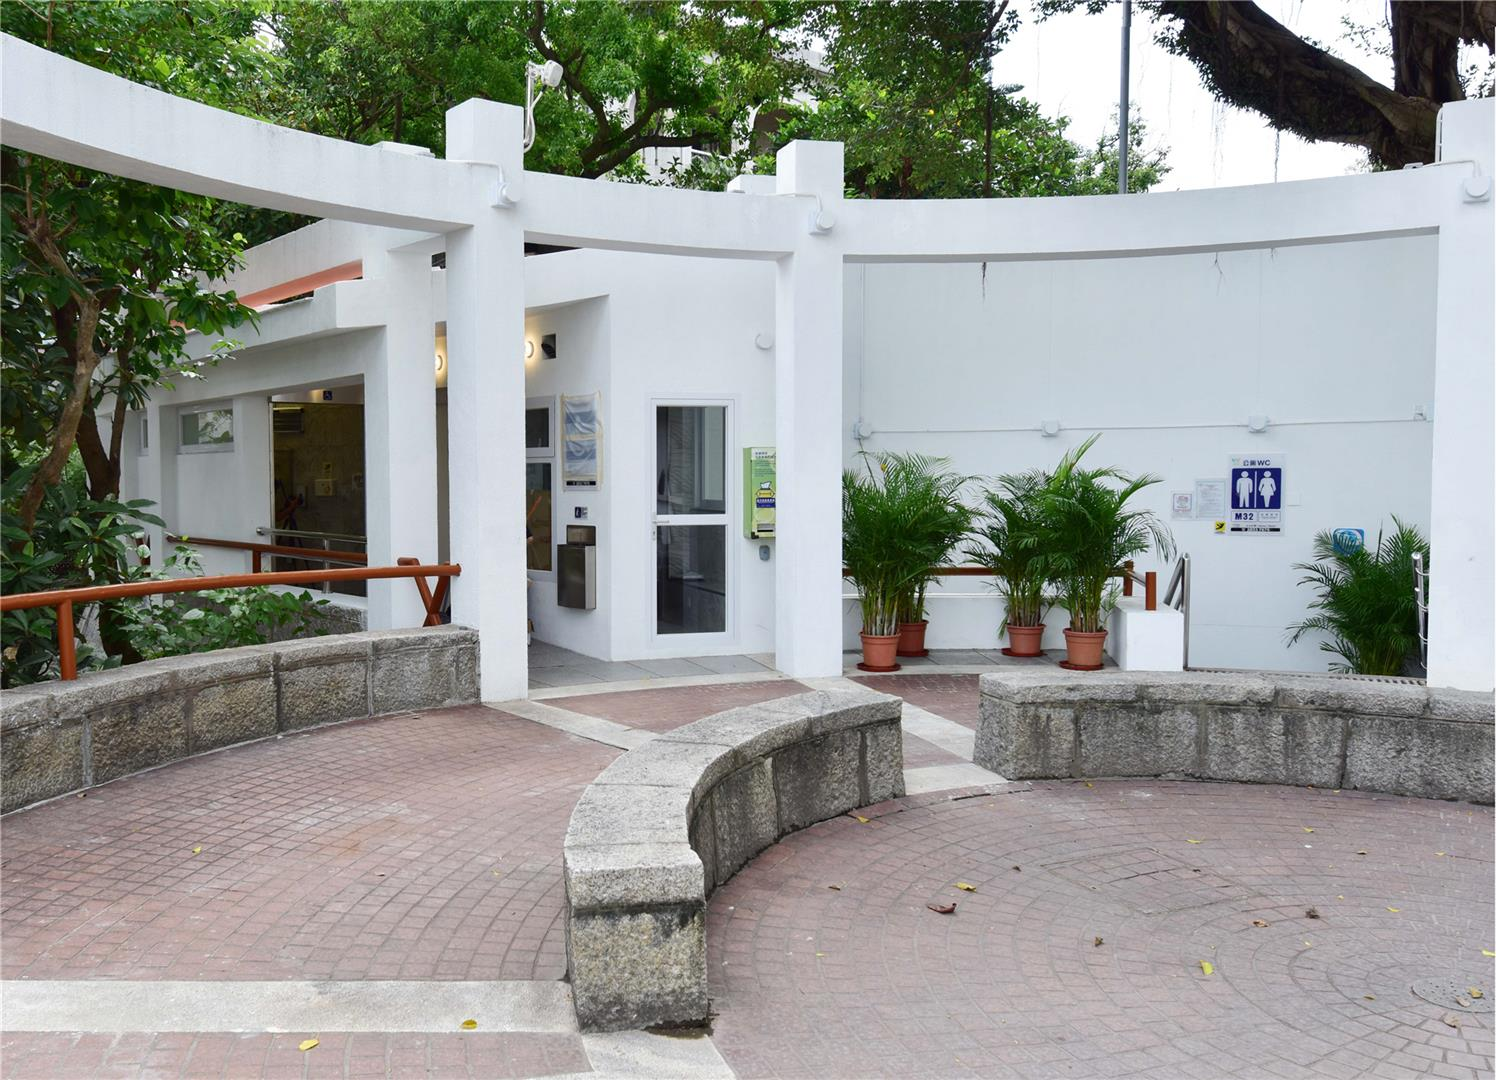 M32 Public toilet at observatory of the Penha Hill